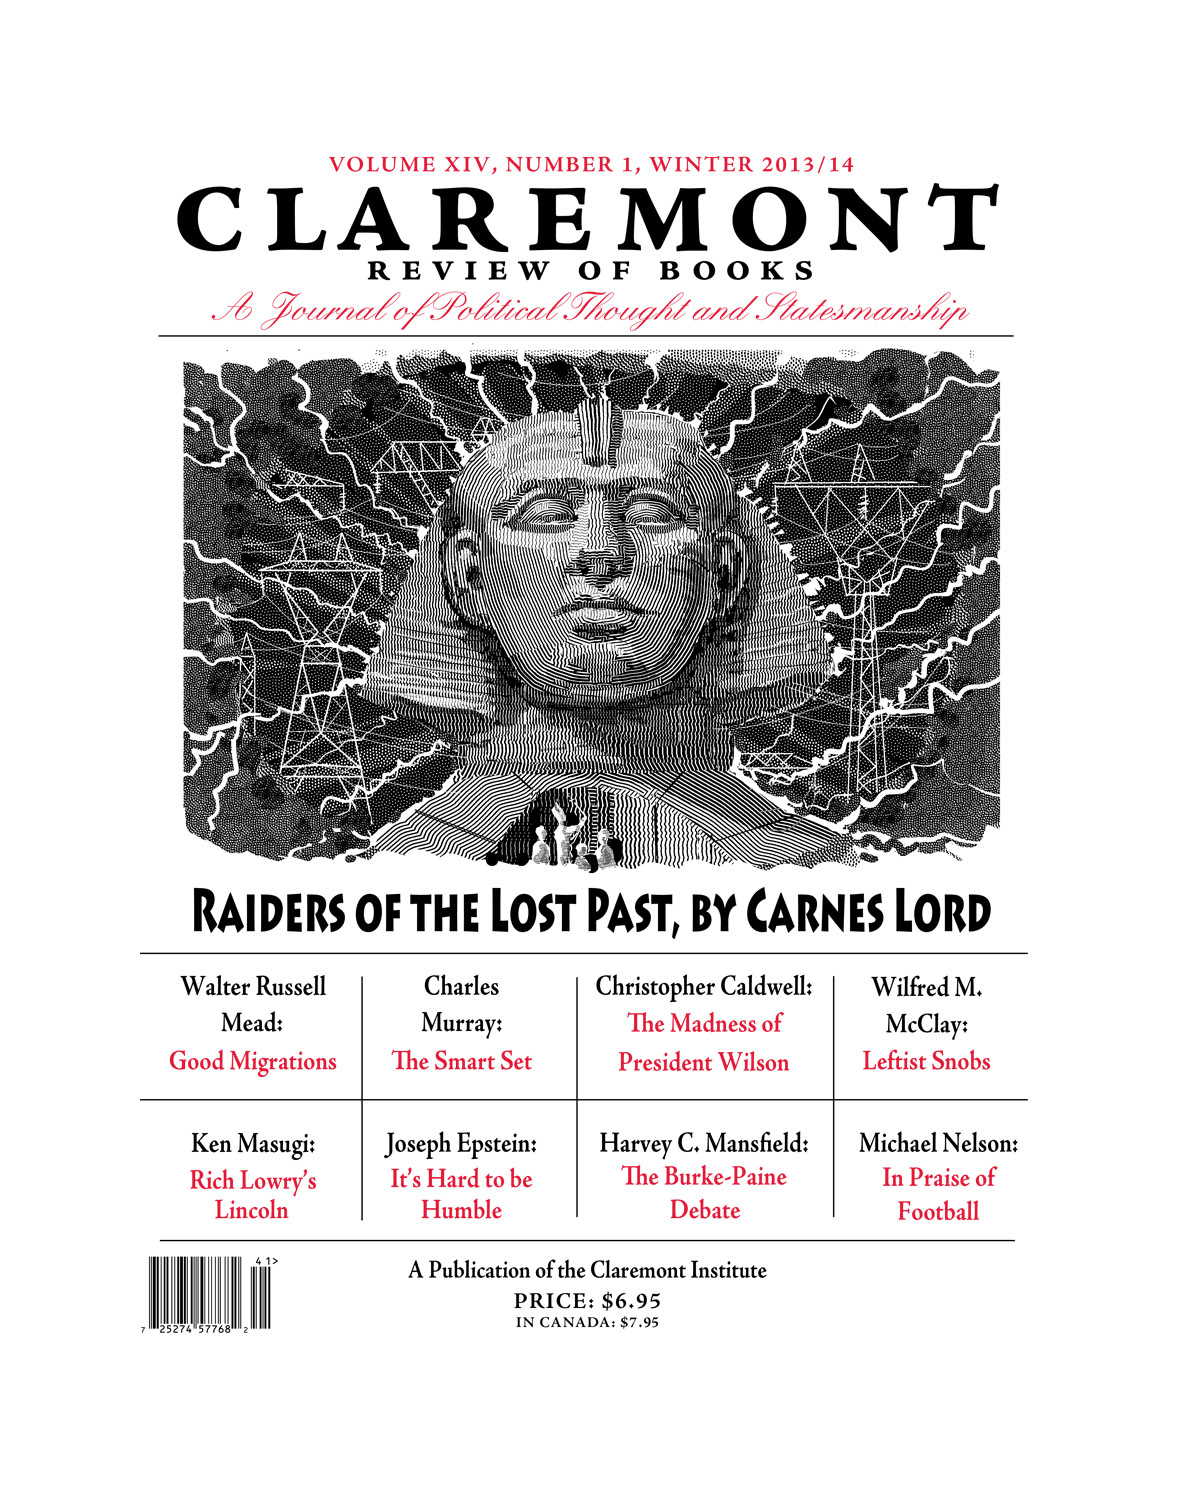 The Claremont Review of Books